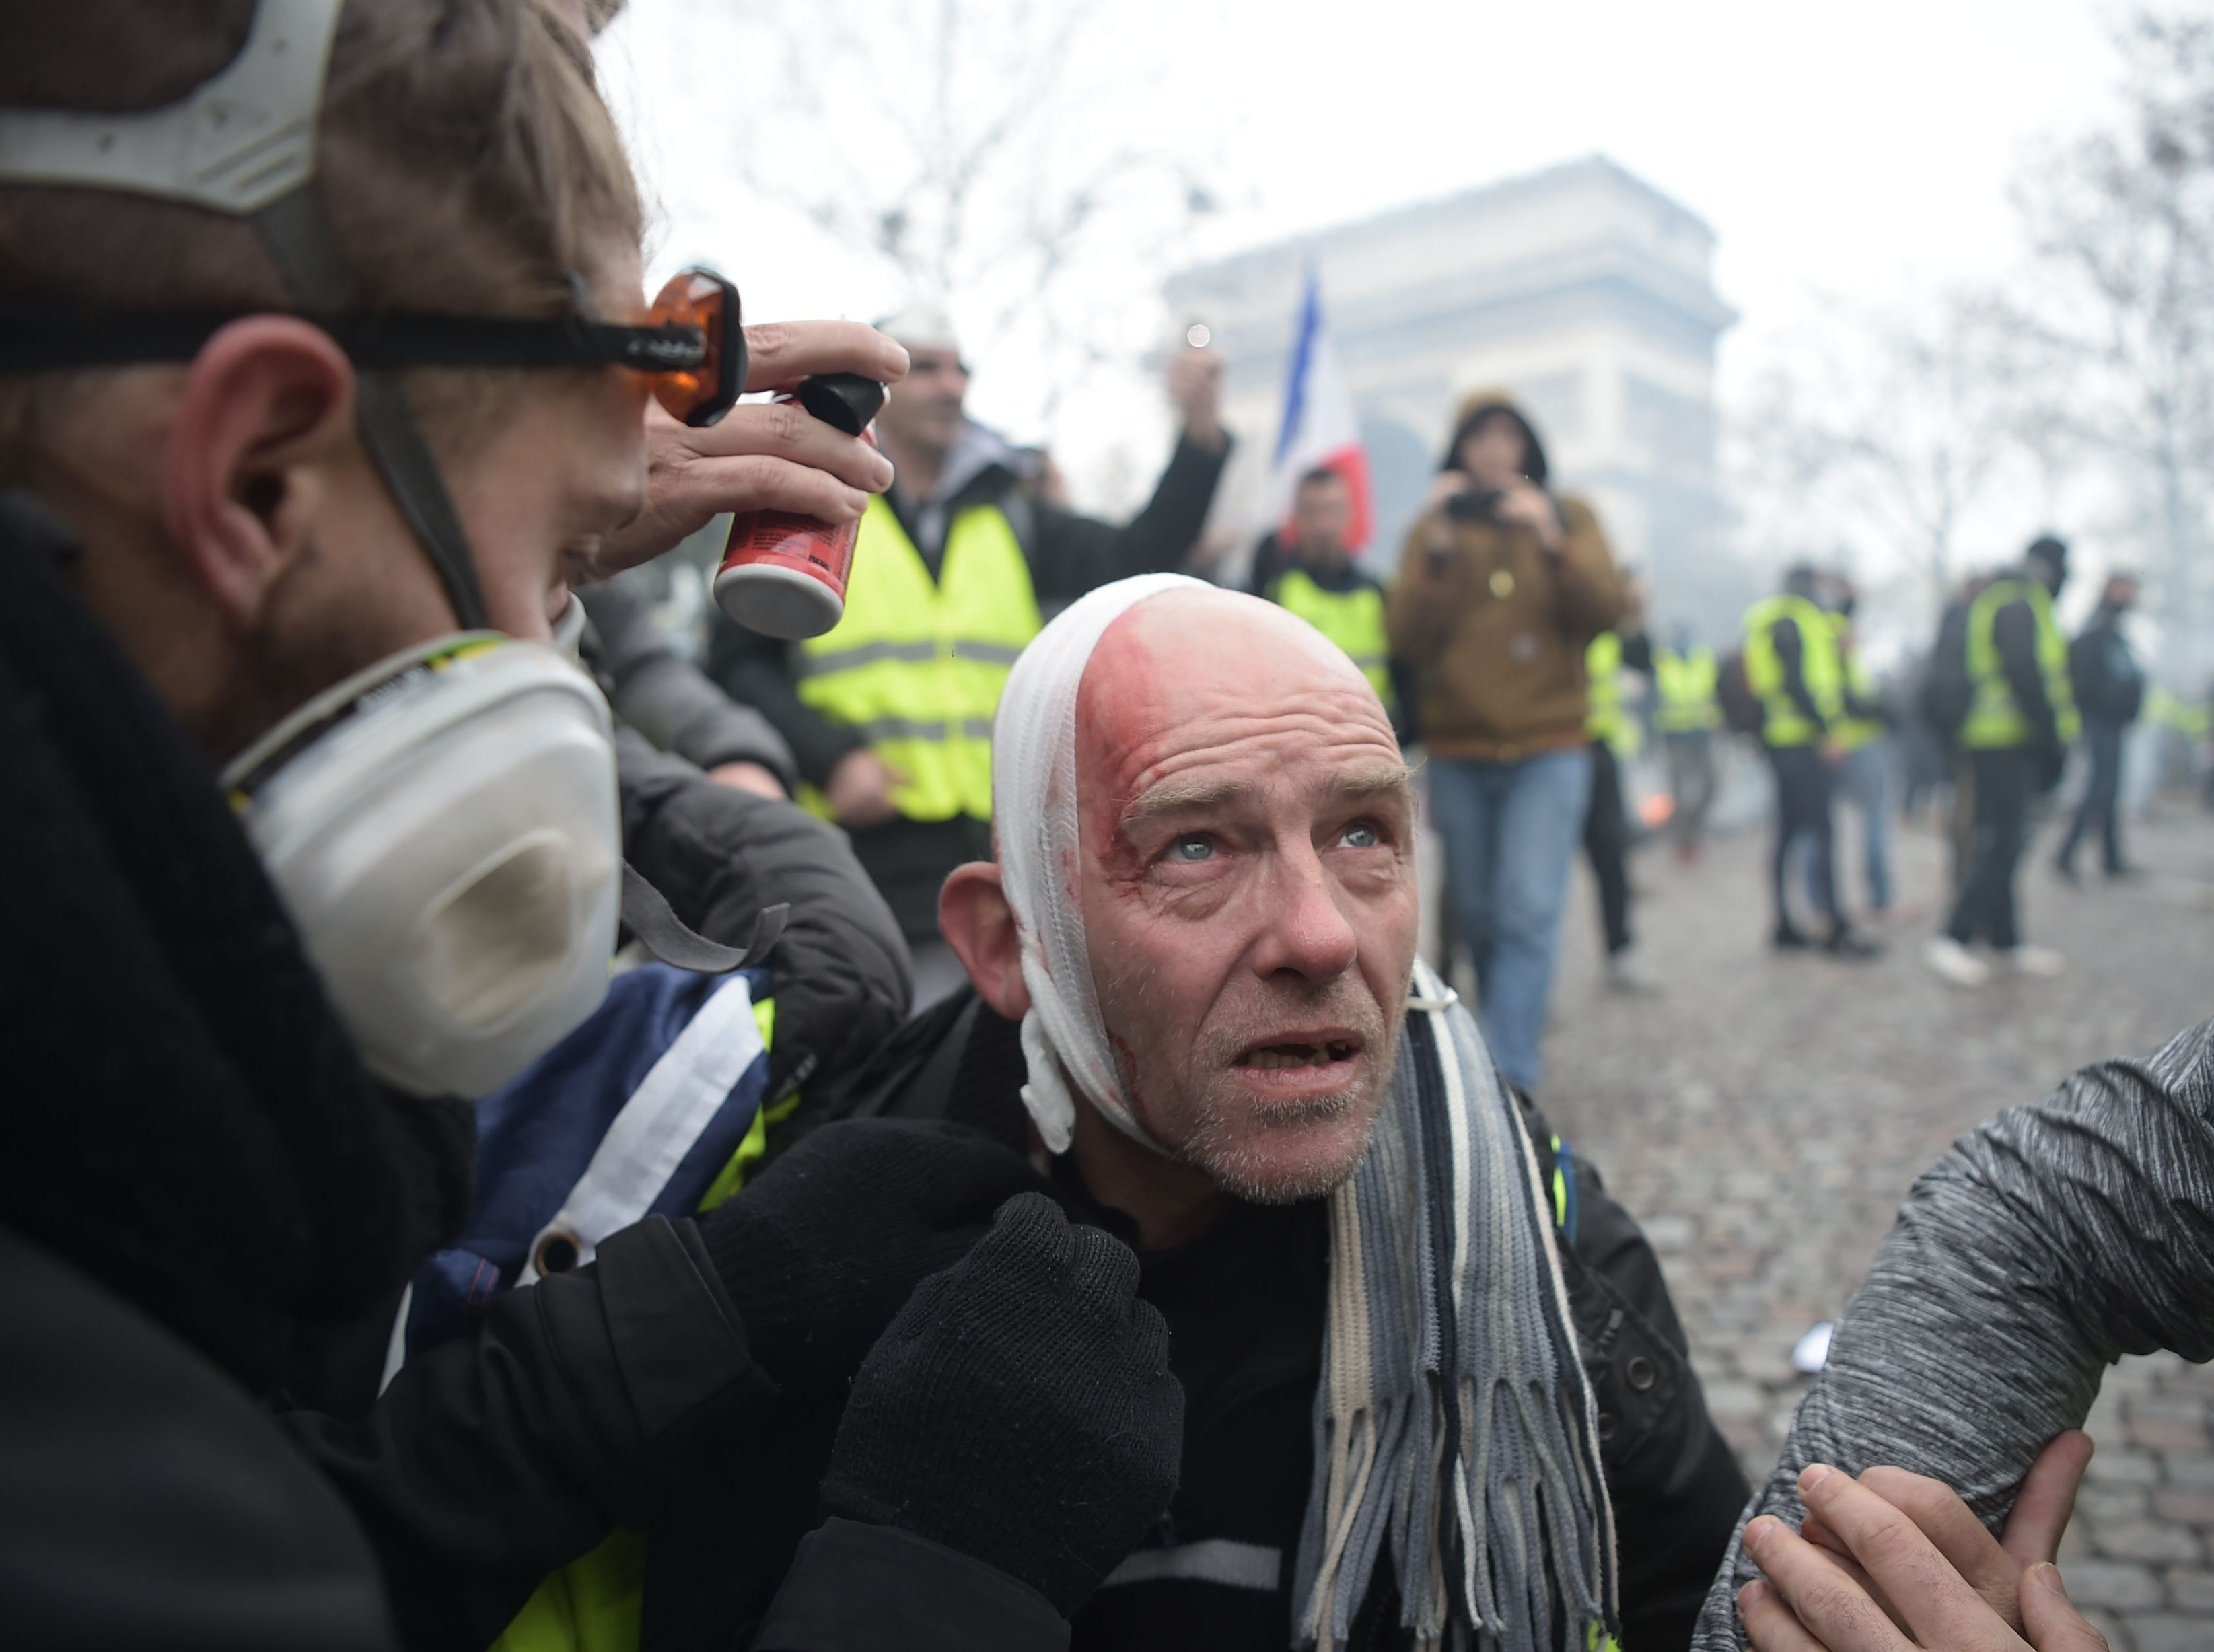 An injured Yellow vest protestor looks on on the Champs Elysees in Paris, on Nov. 24, 2018 during a protest against rising oil prices and living costs.